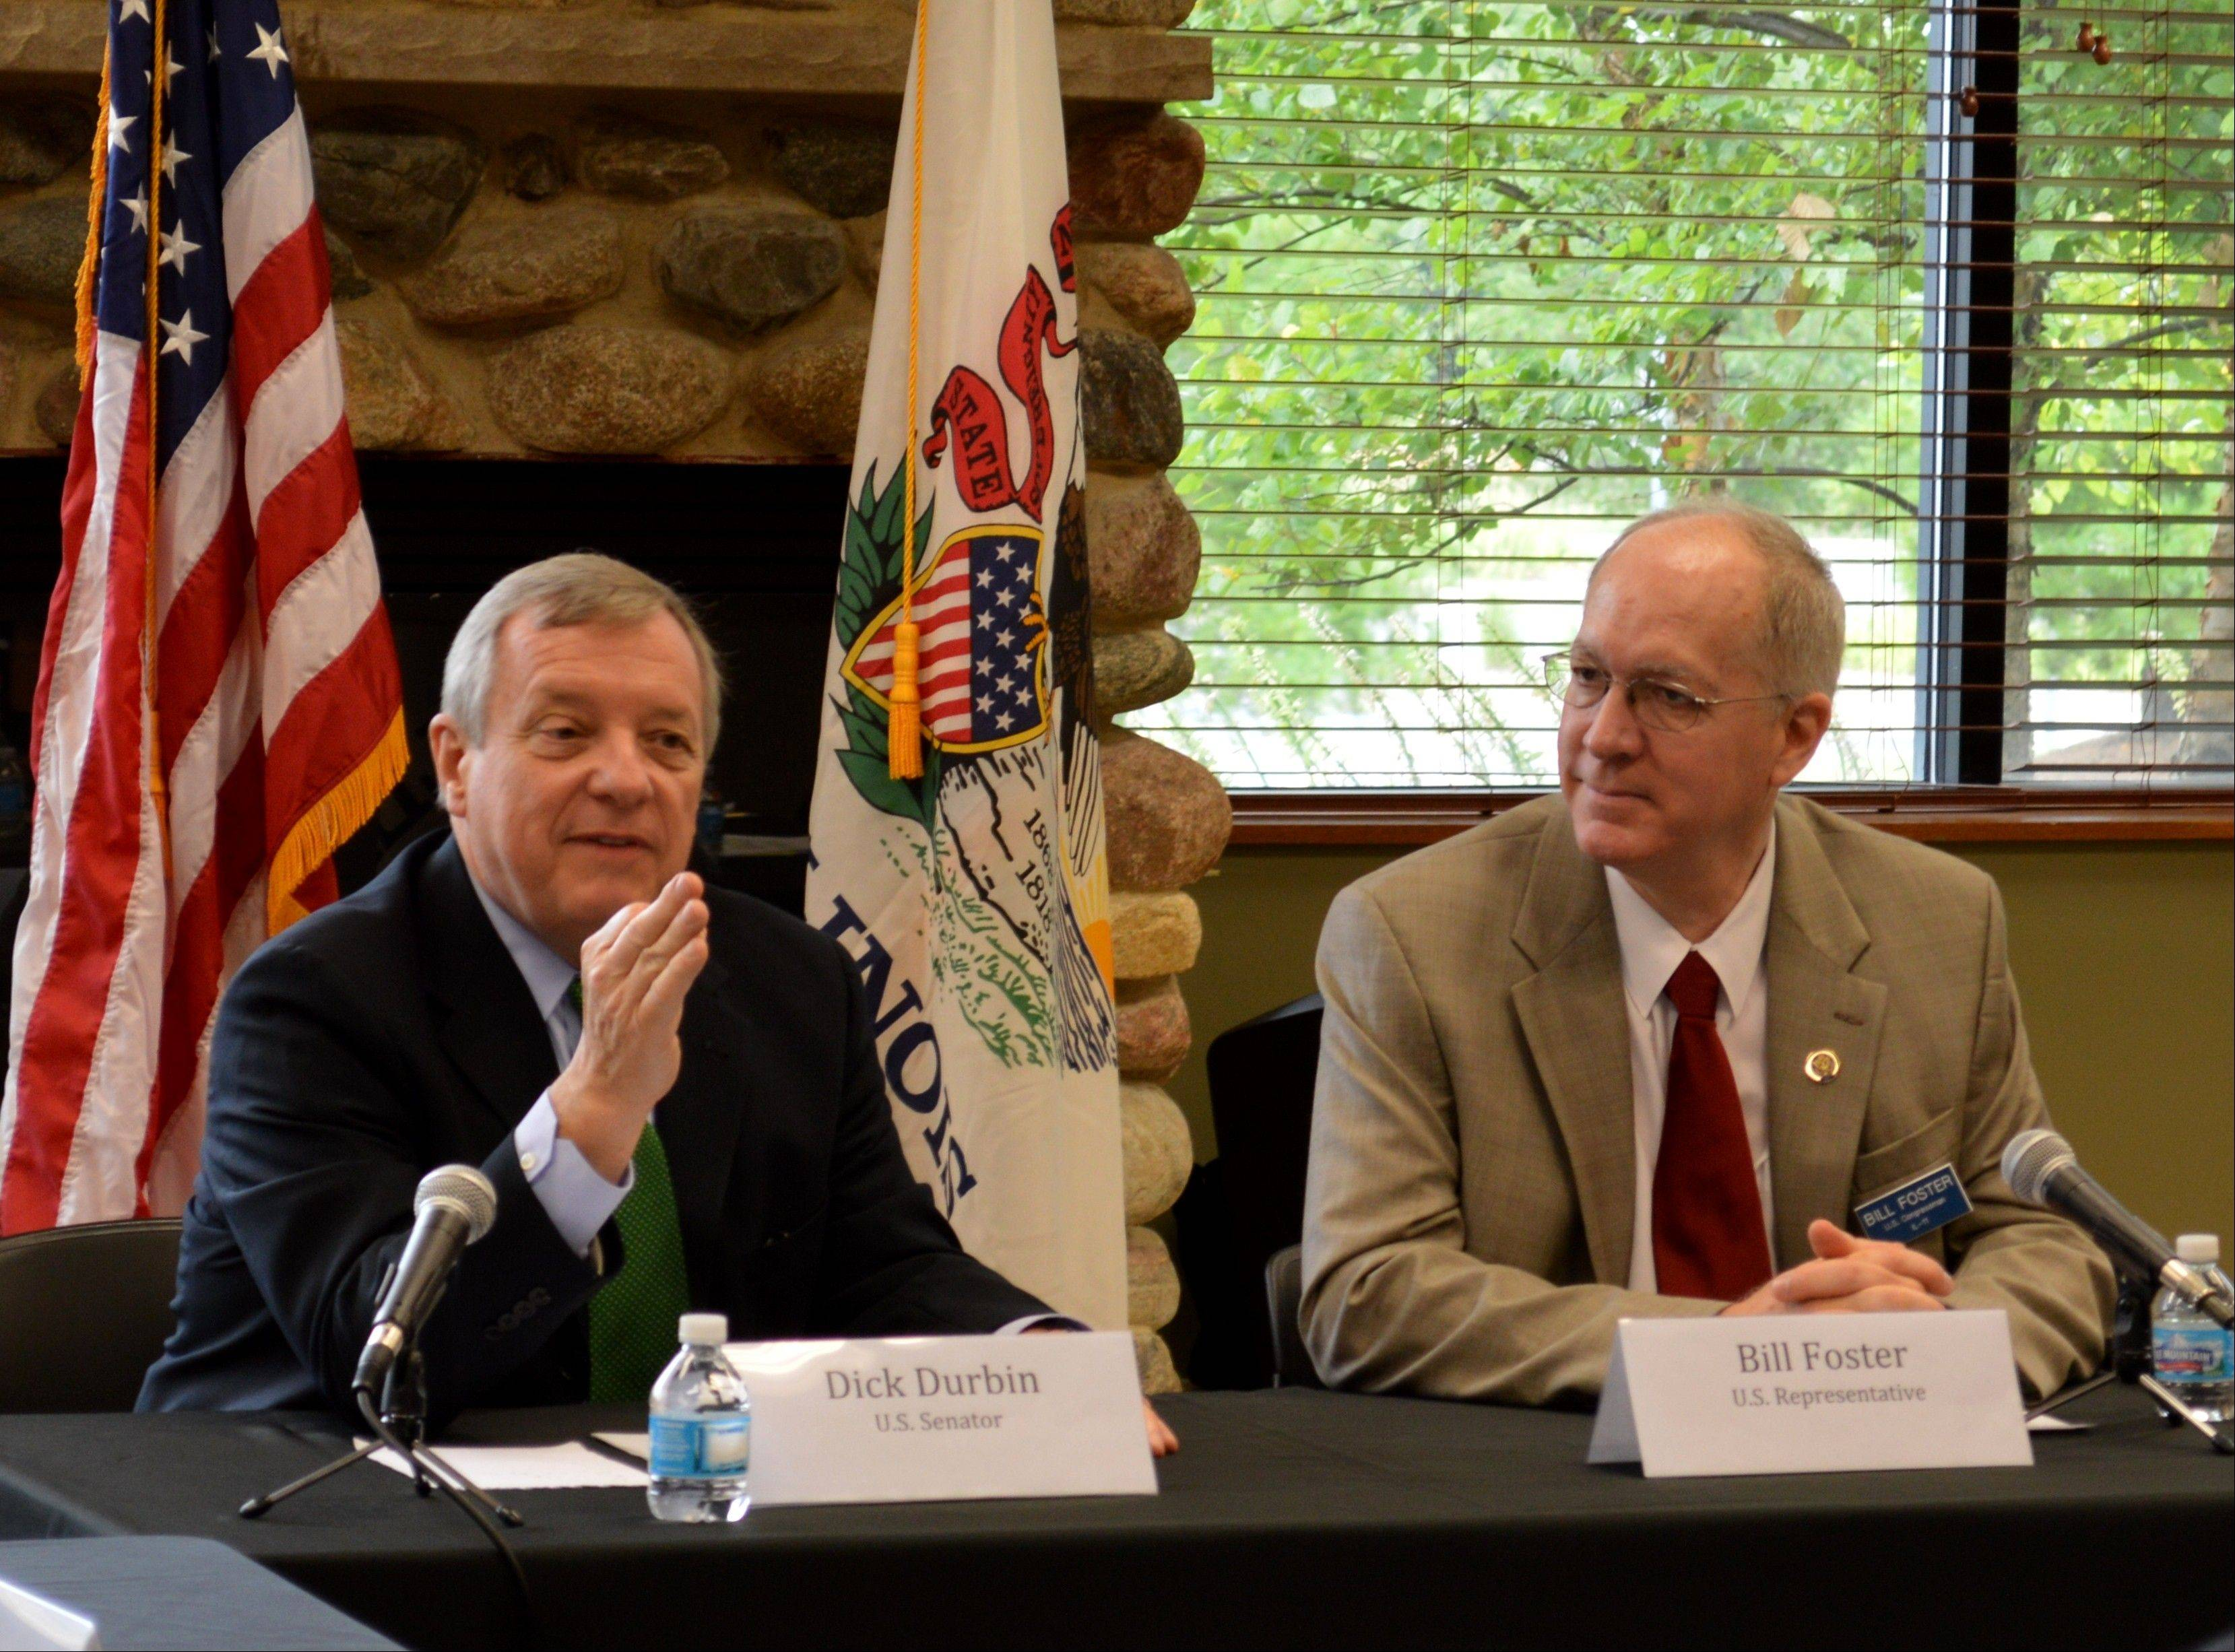 Sen. Dick Durbin, left, and Rep. Bill Foster joined forces in Aurora Tuesday to challenge House Republicans to bring a Senate immigration reform proposal to a vote.